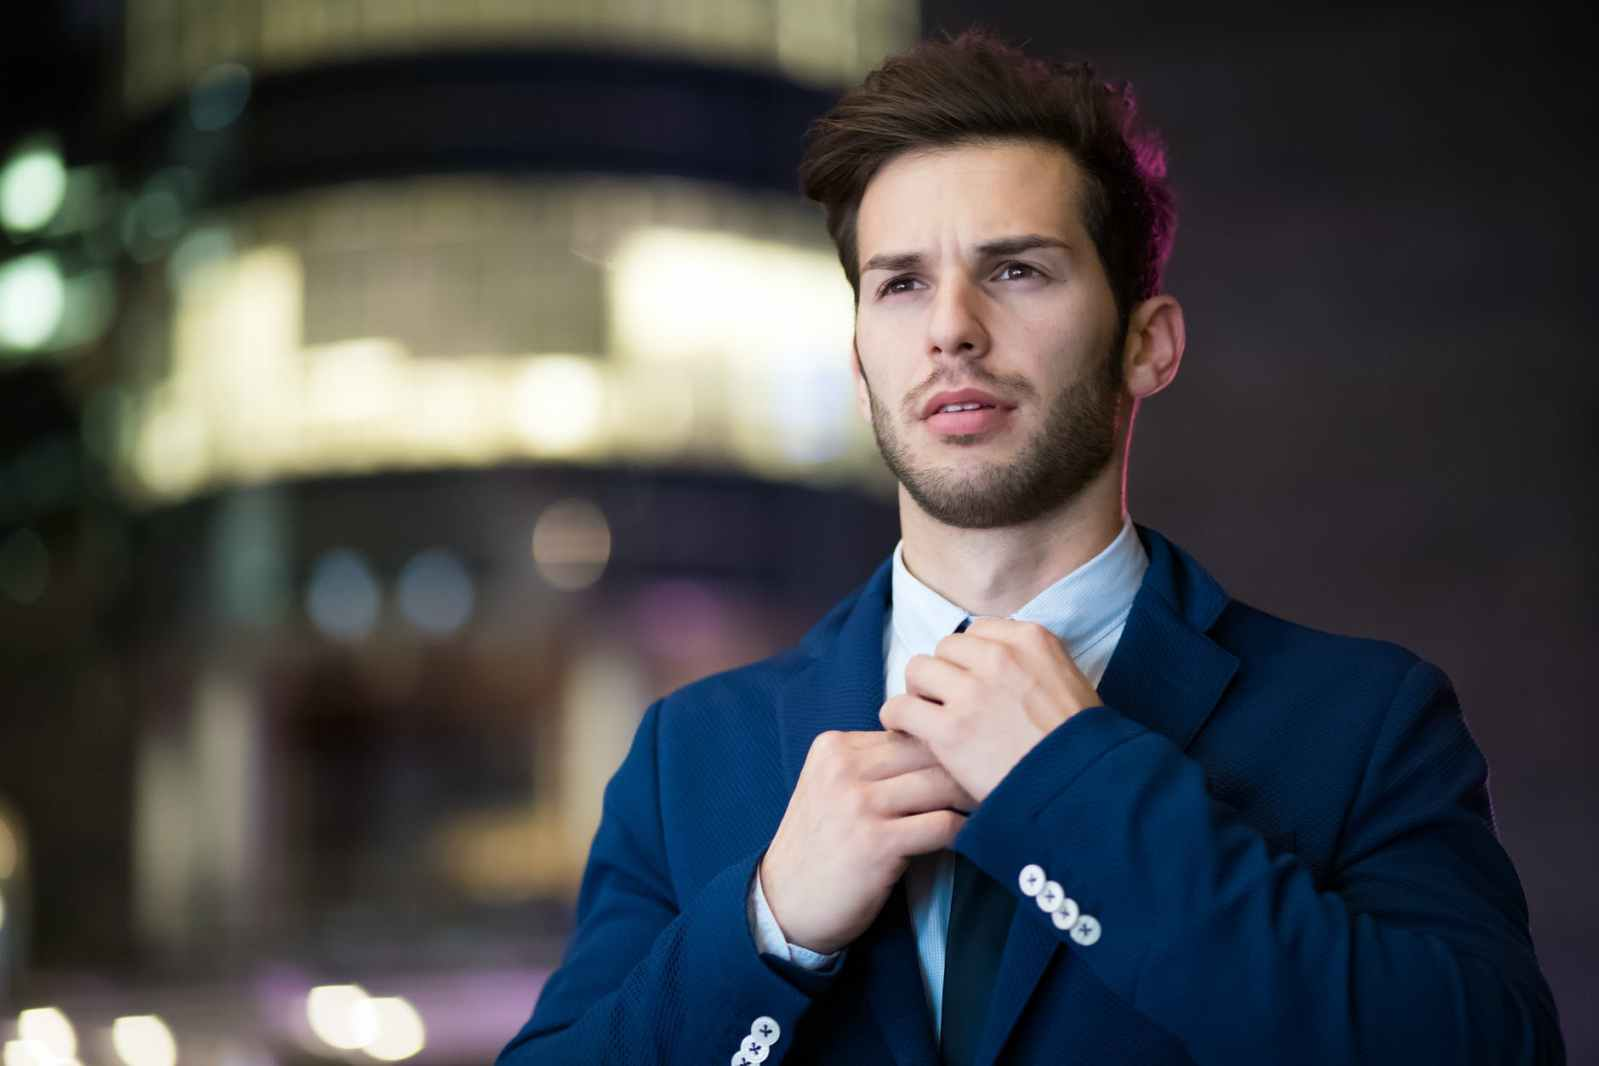 man wearing blue suit